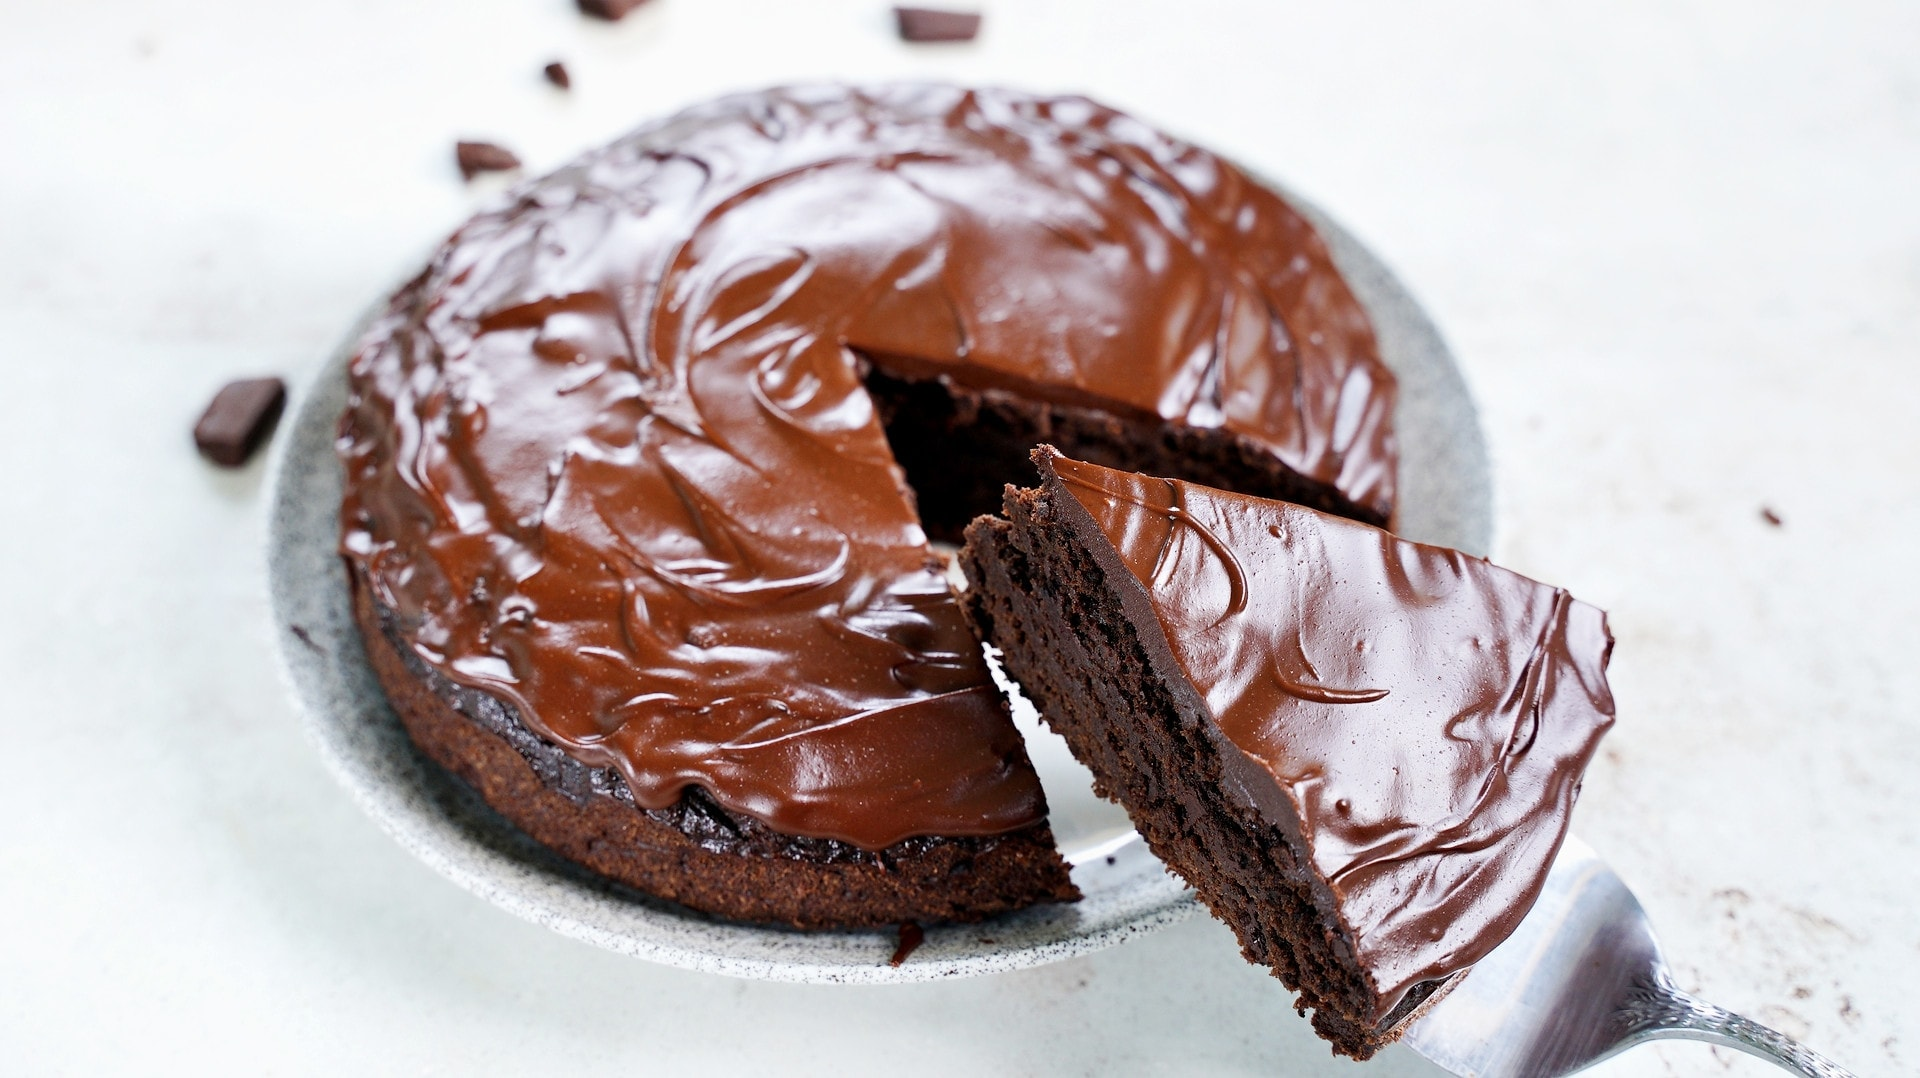 horizontal shot of gluten-free chocolate cake with ganache and a piece cut out